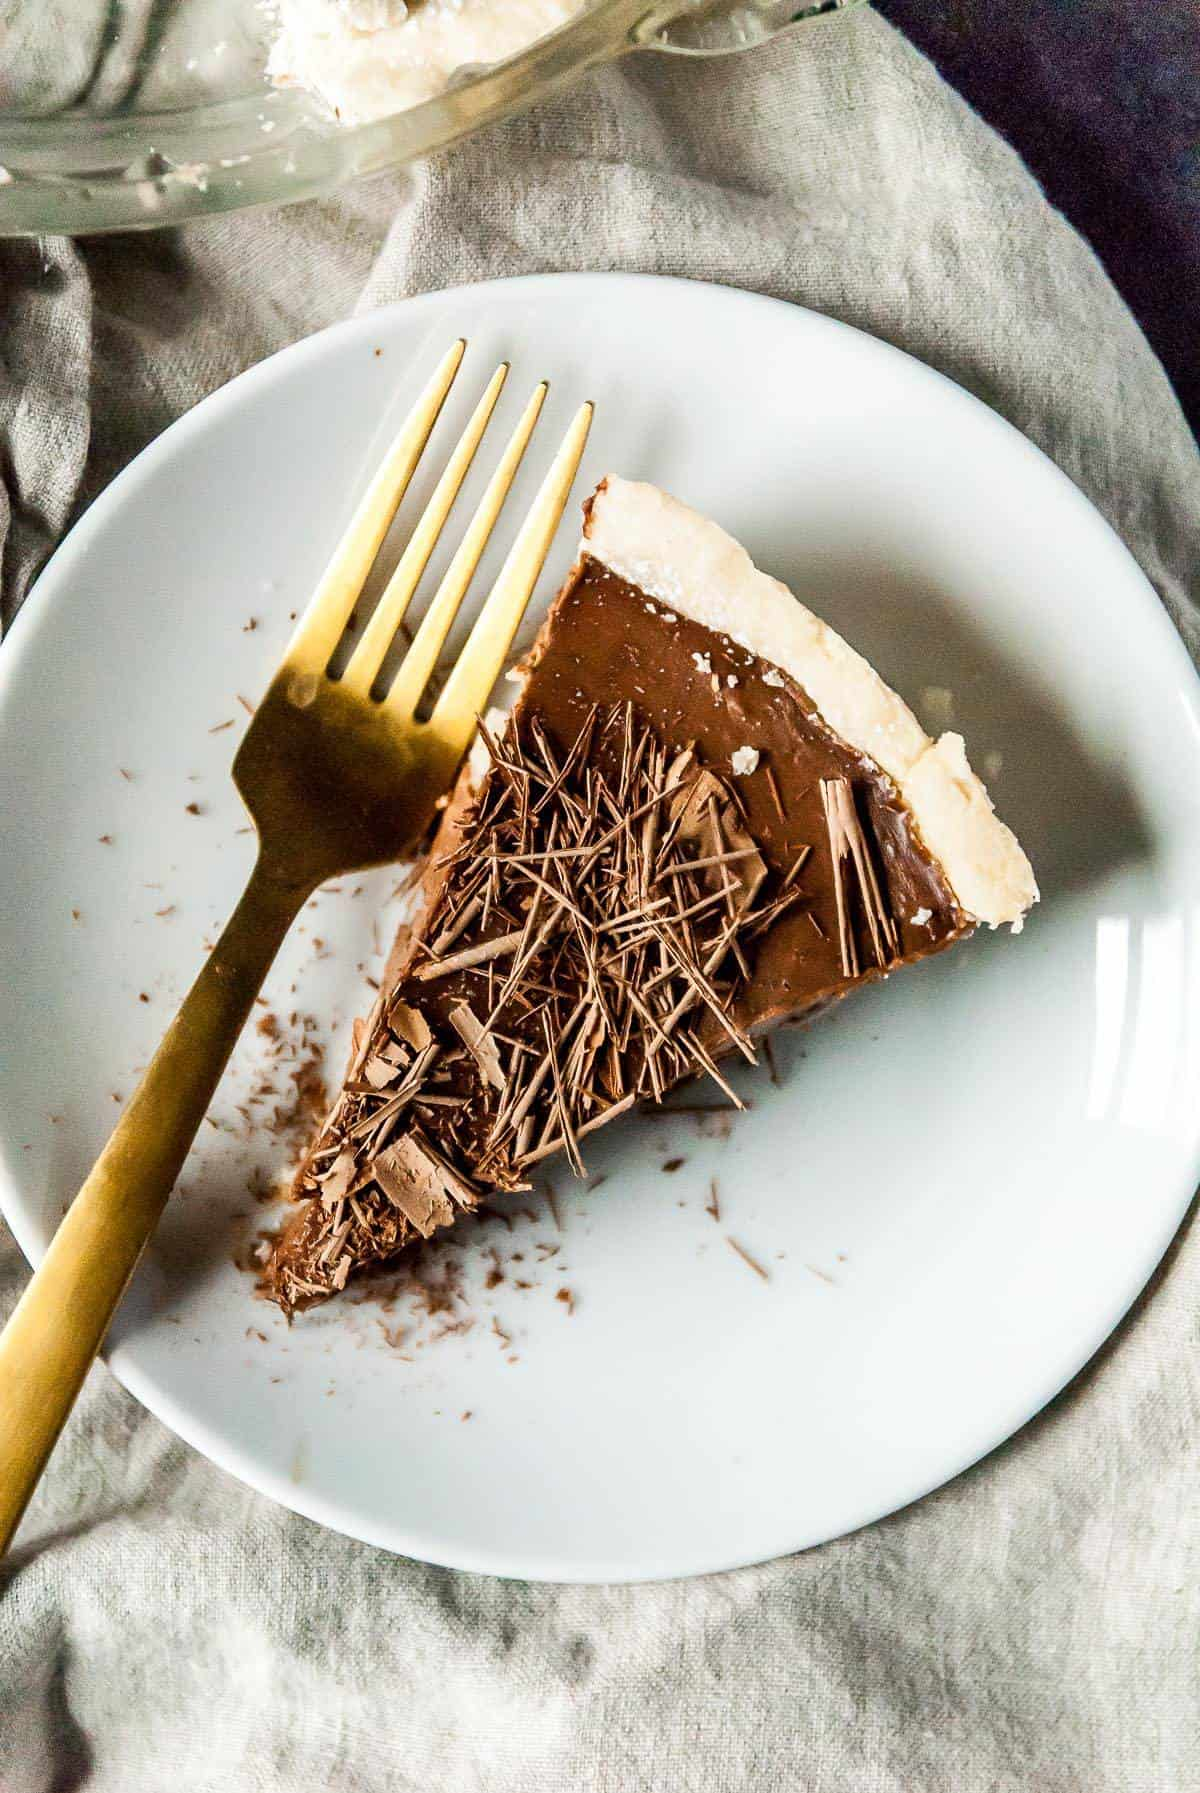 This easy vegan chocolate cream pie is made without tofu and is soy free! Made with coconut milk, a shortbread crust and lots of chocolate.